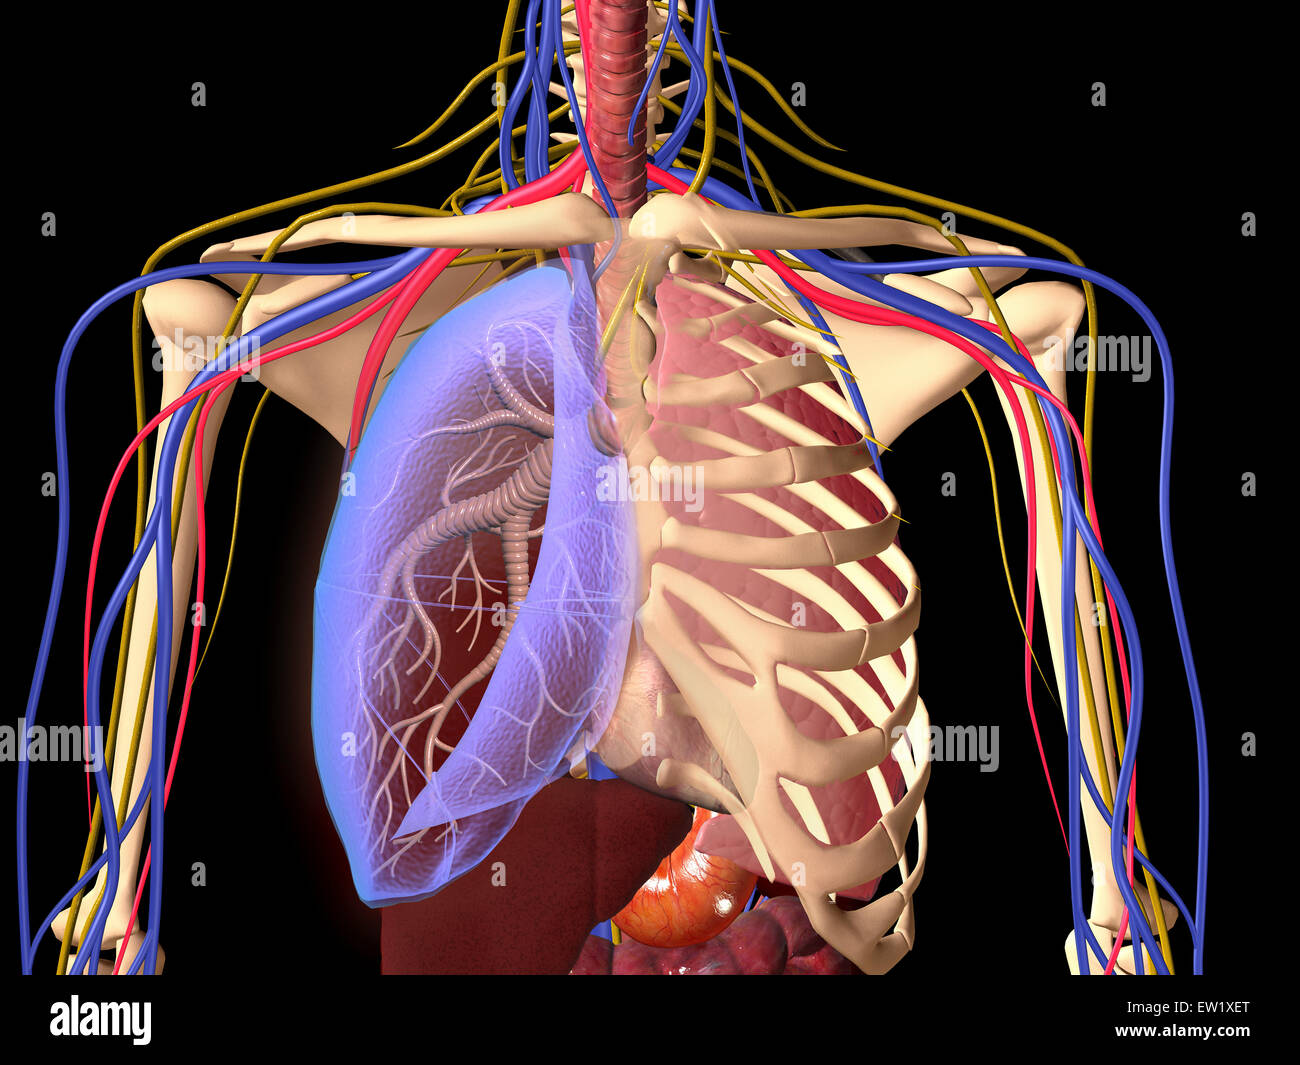 Human skeleton showing a transparent lung with surrounding rib cage and nervous system. - Stock Image